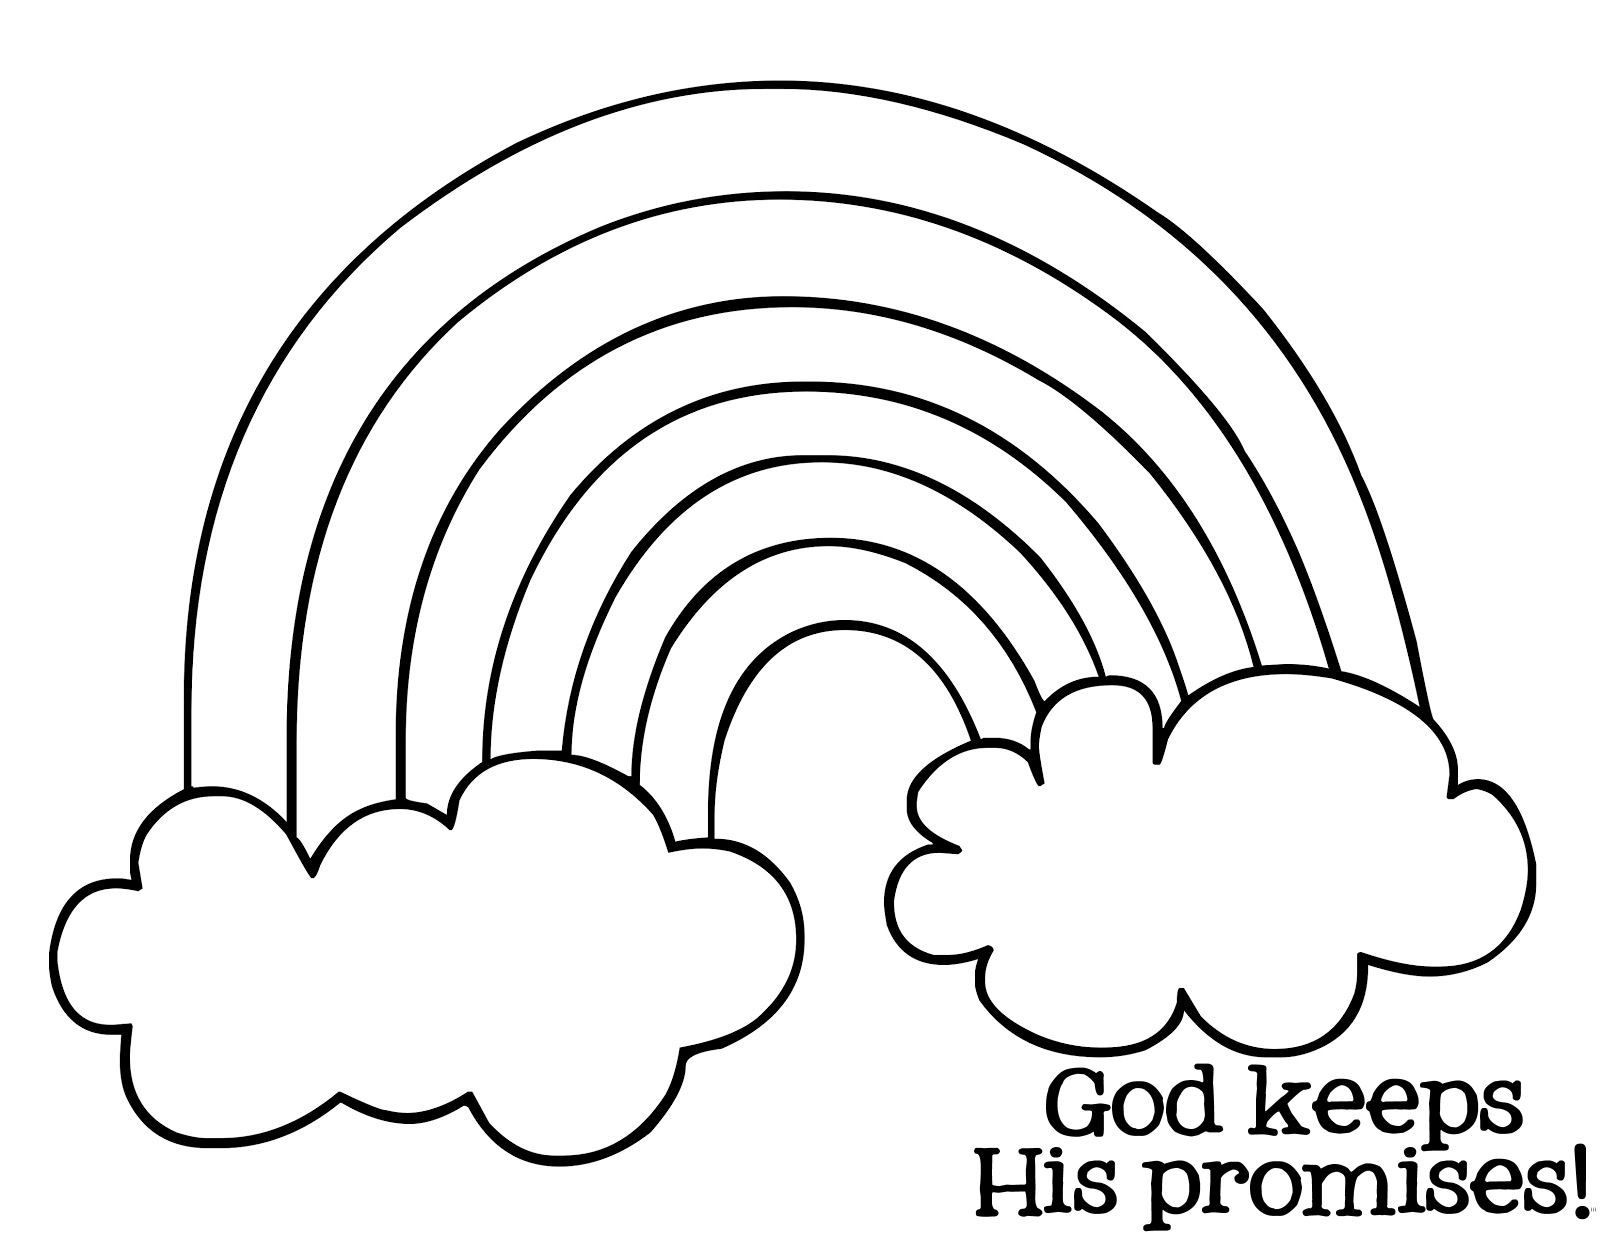 coloring pages with bible verses Collection-Free Printable Bible Coloring Pages with Scriptures Elegant Free Rainbow Bible Lesson Activity Mysunwillshine Free 14-g